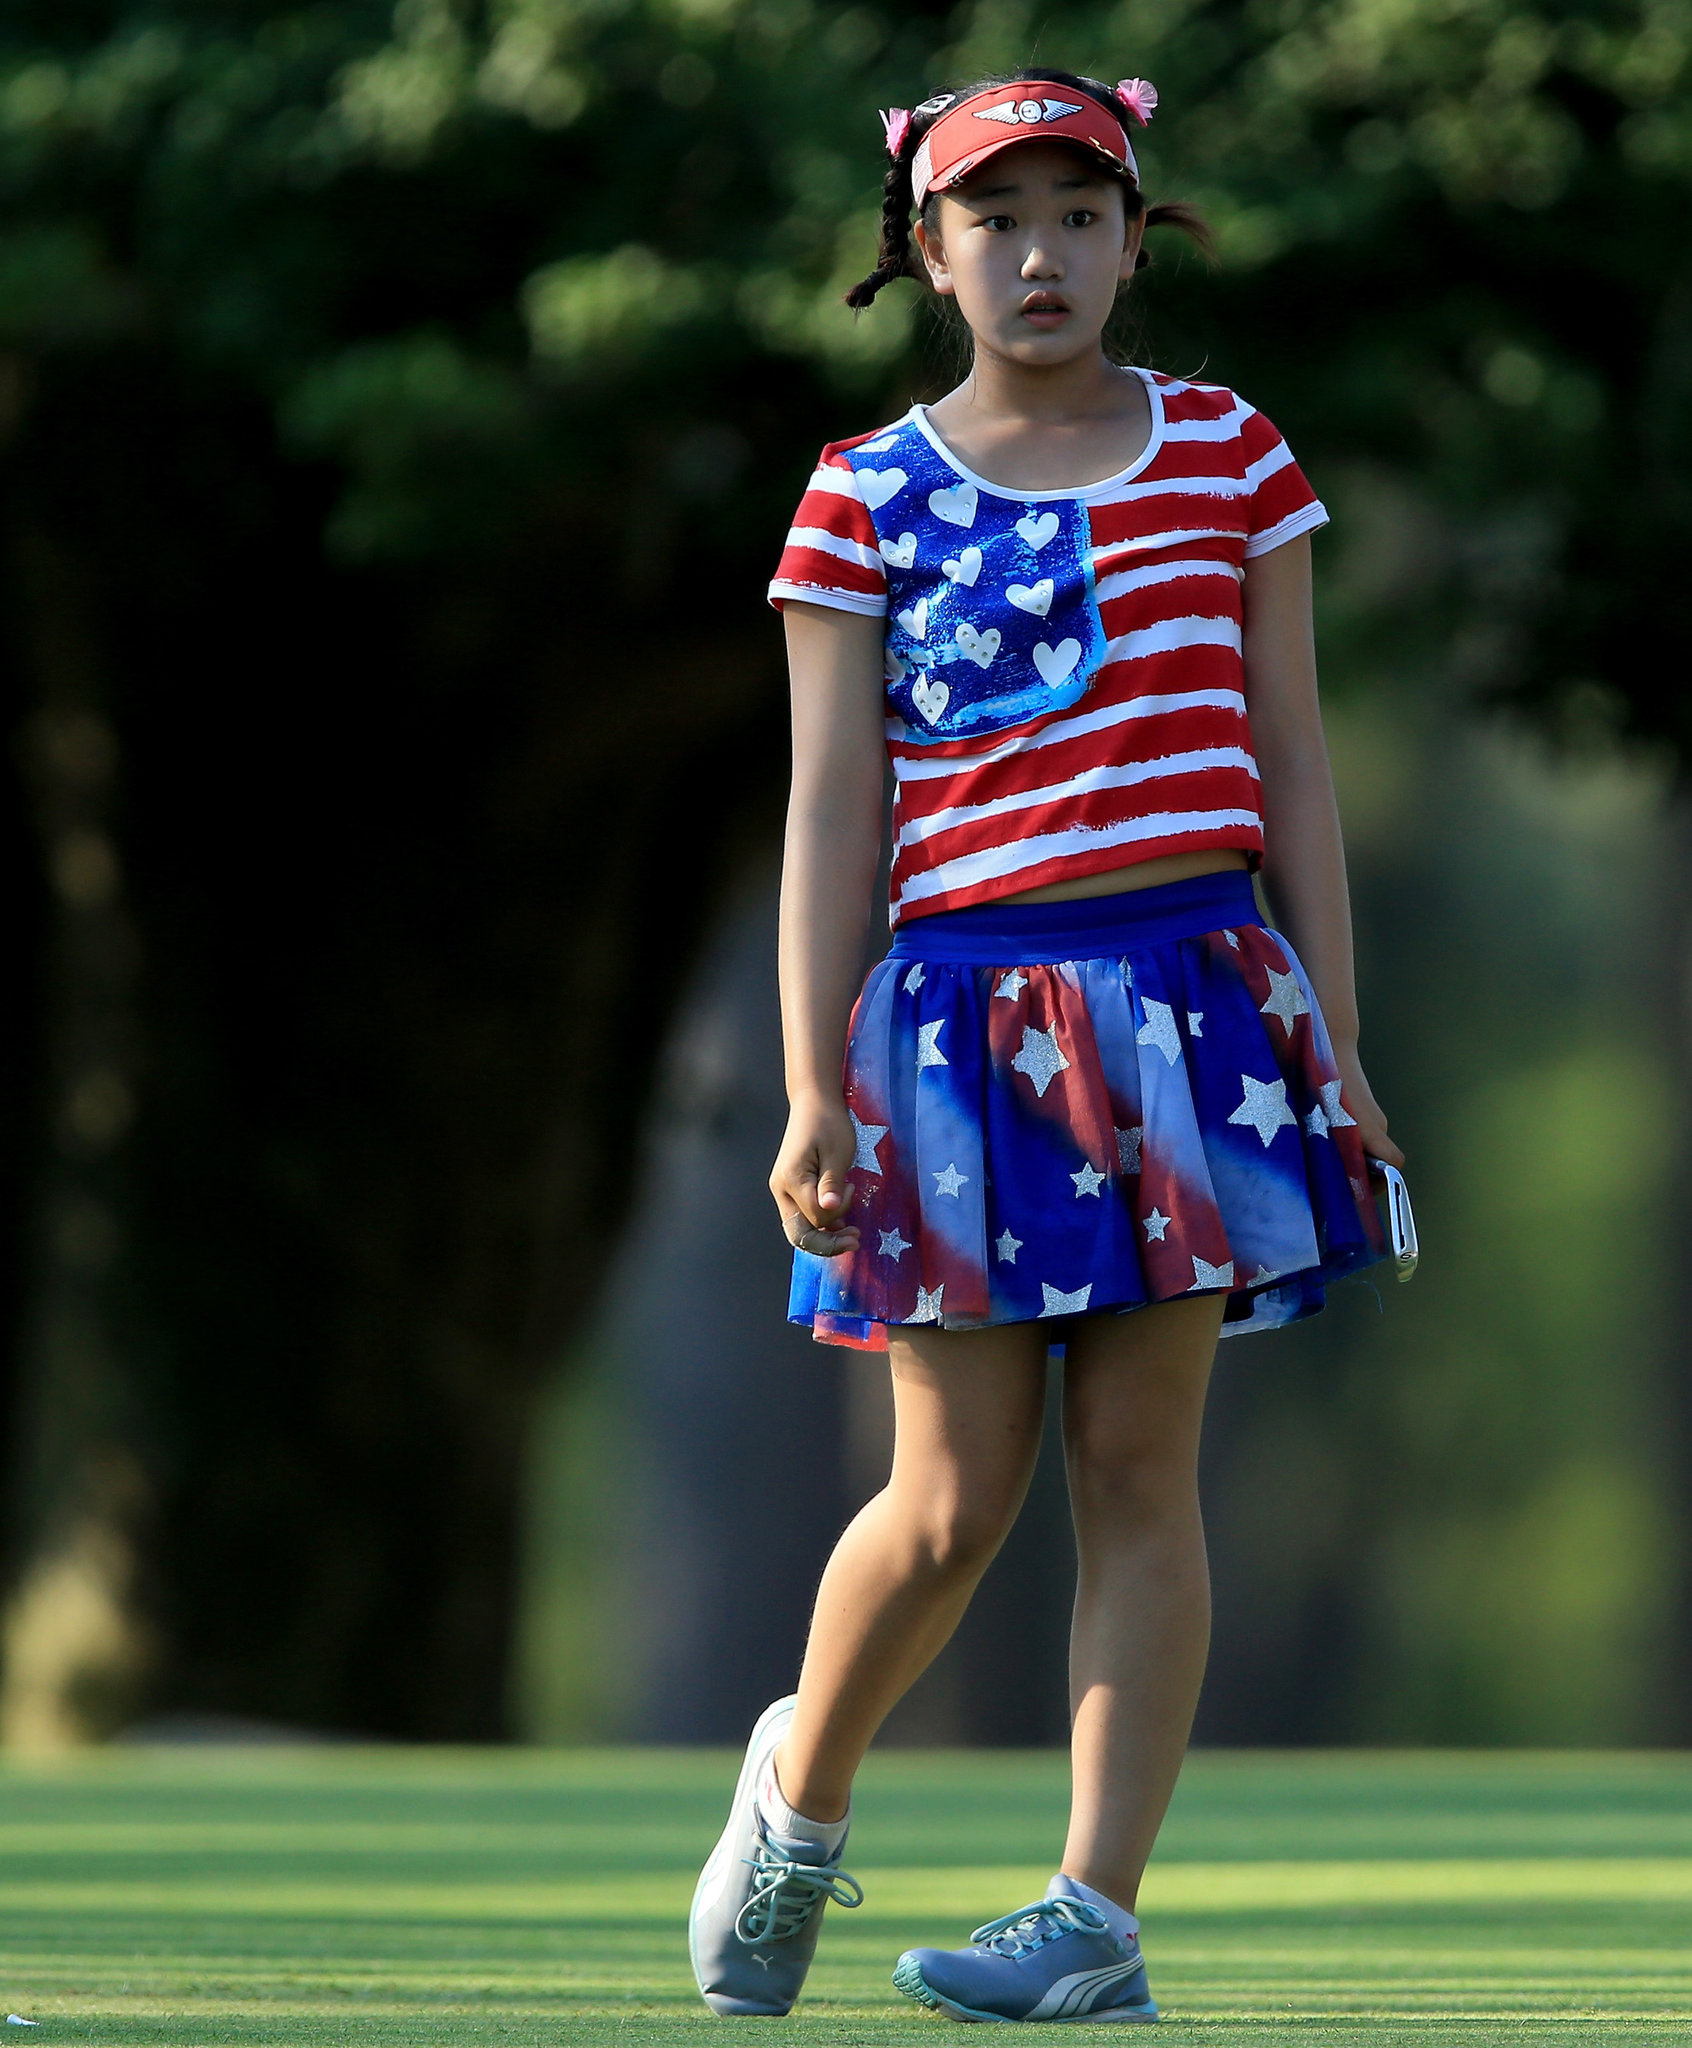 Lucy Li, 11, Tops A 78 With Ice Cream At The U.S. Women's